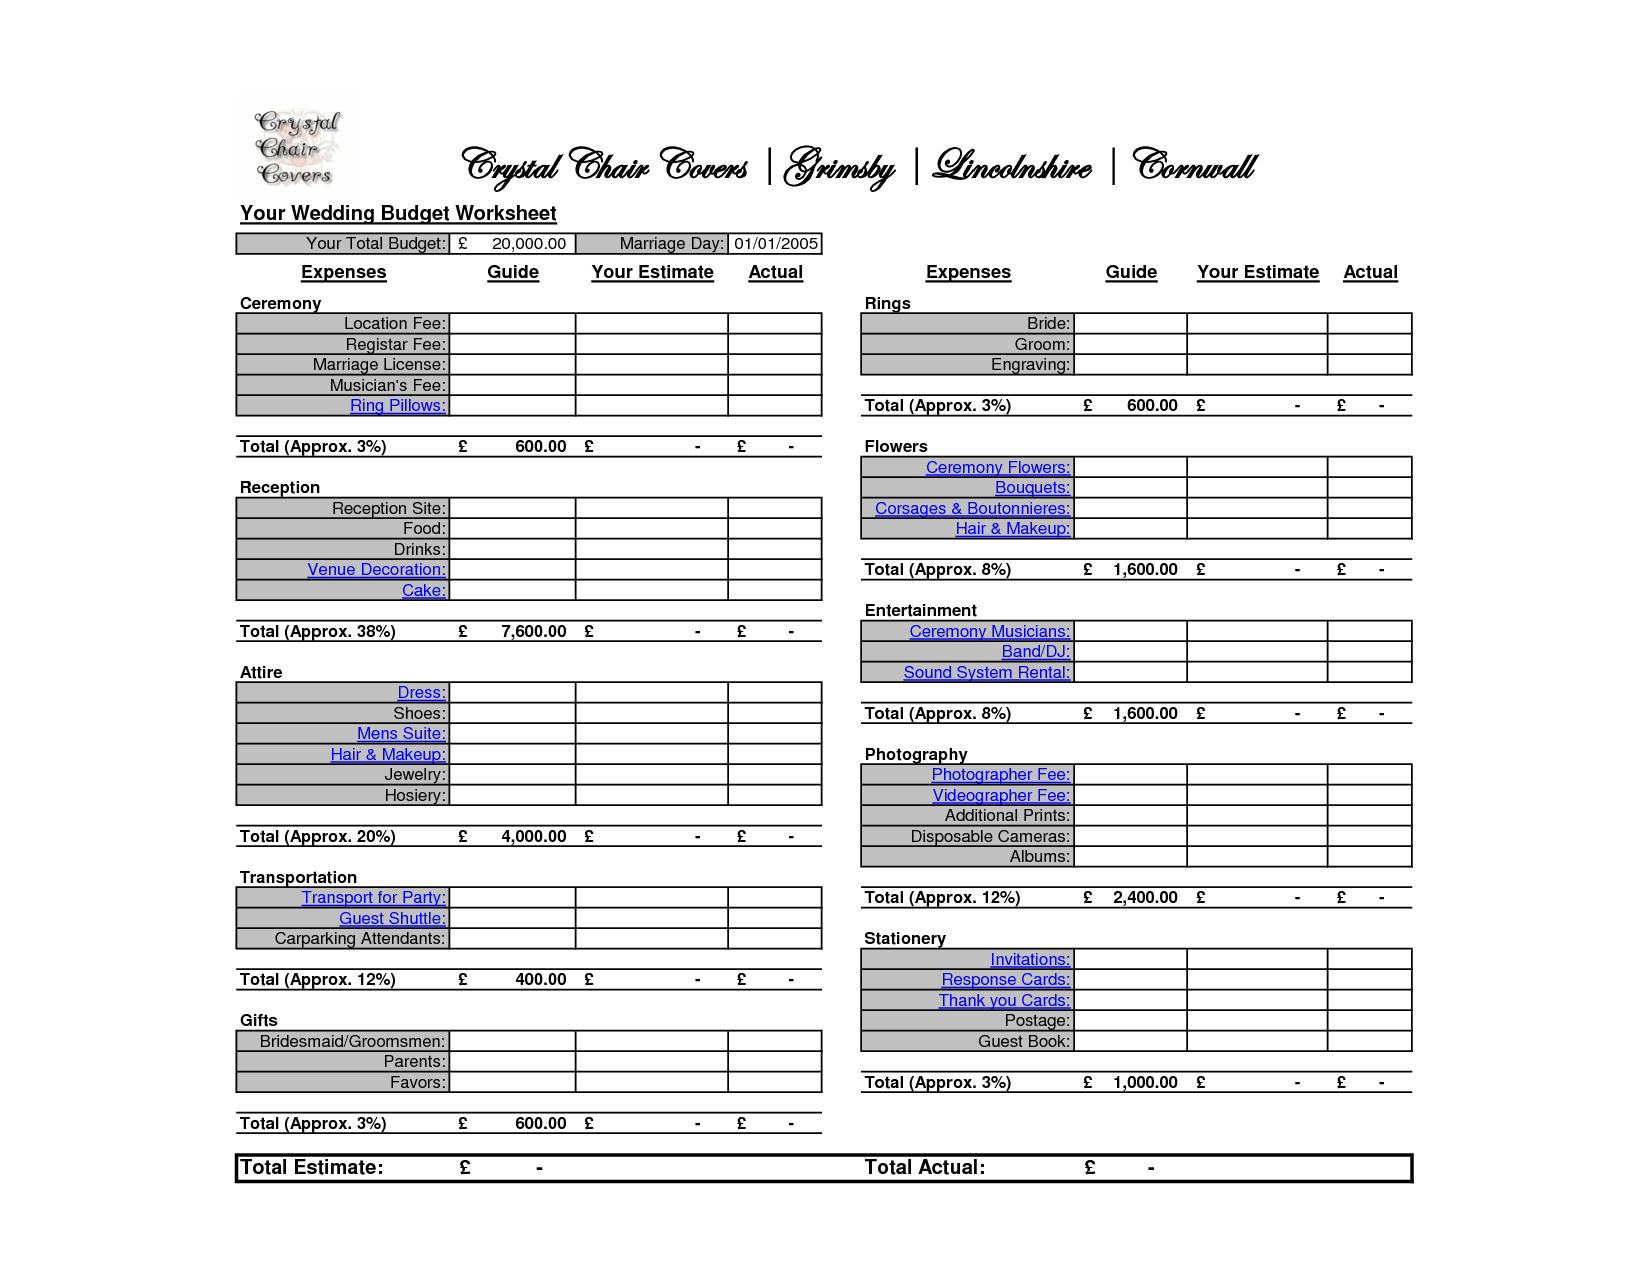 wedding budget planner spreadsheet uk - LAOBING KAISUO